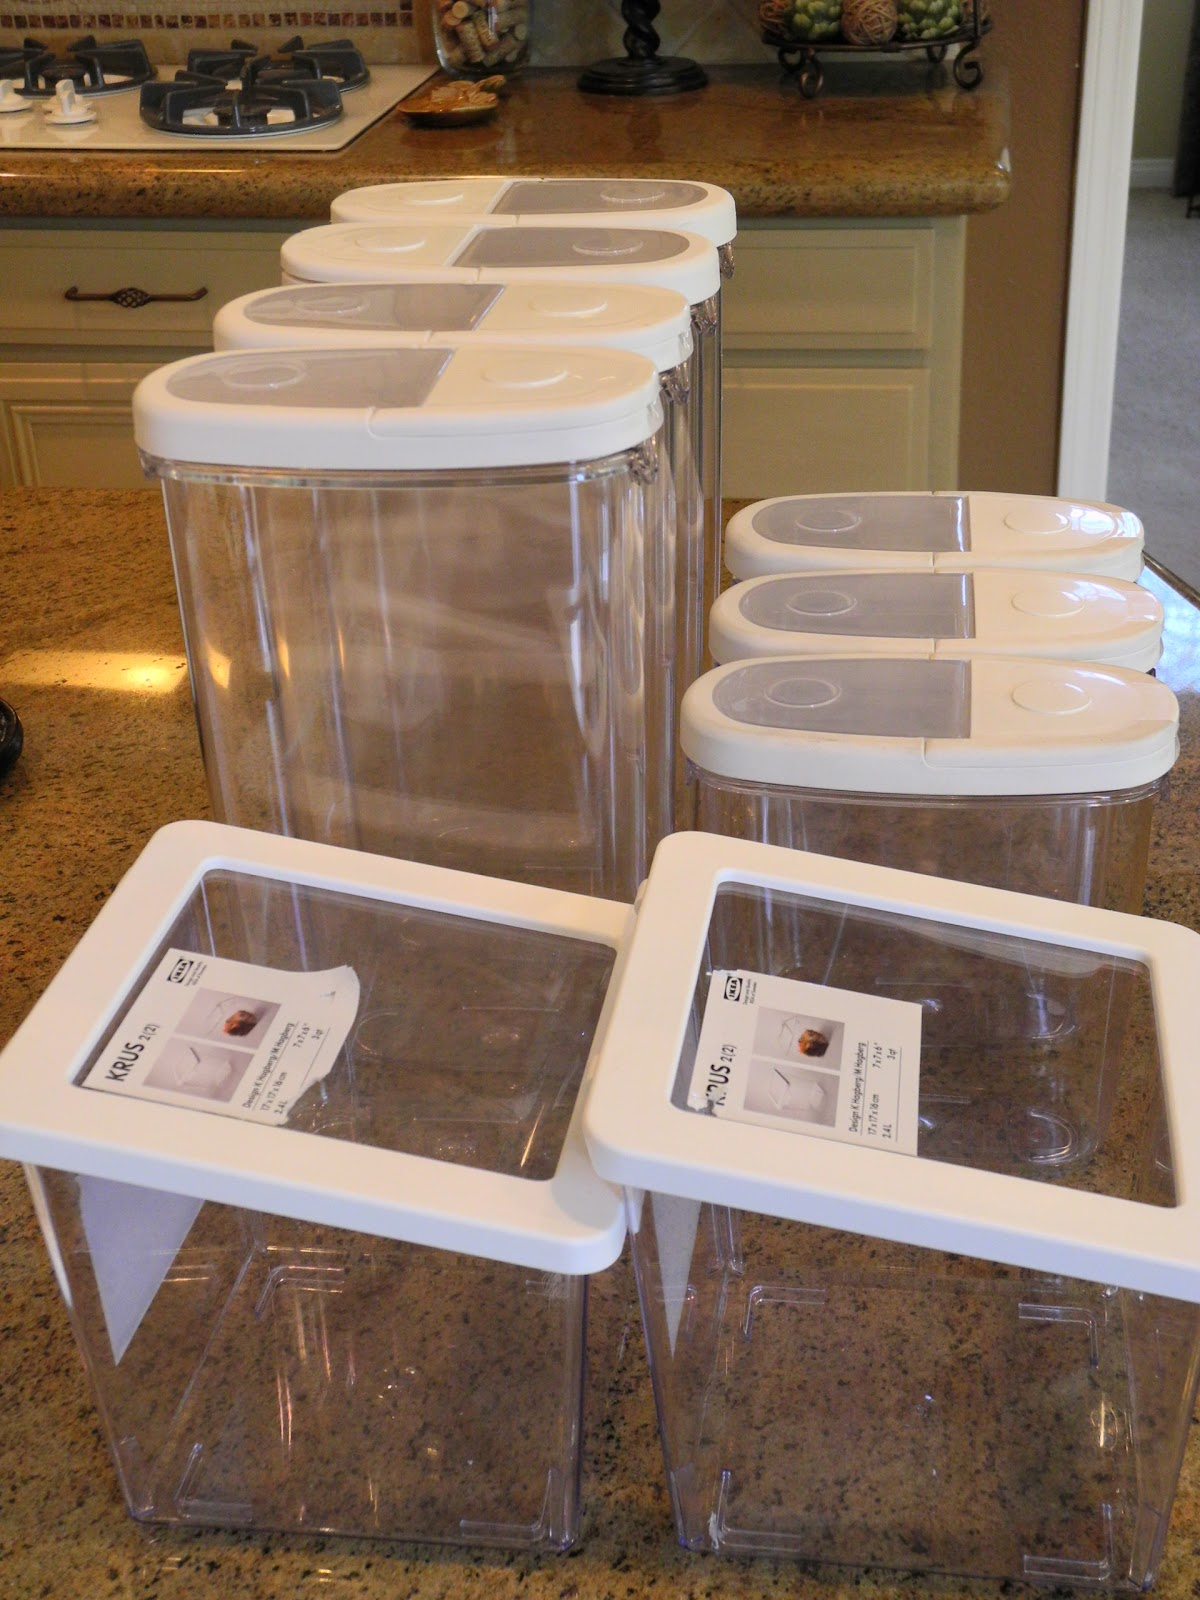 Kitchen Storage Boxes Instock Cabinets Nothing But Blue Skies An Organized Pantry In 5 Steps